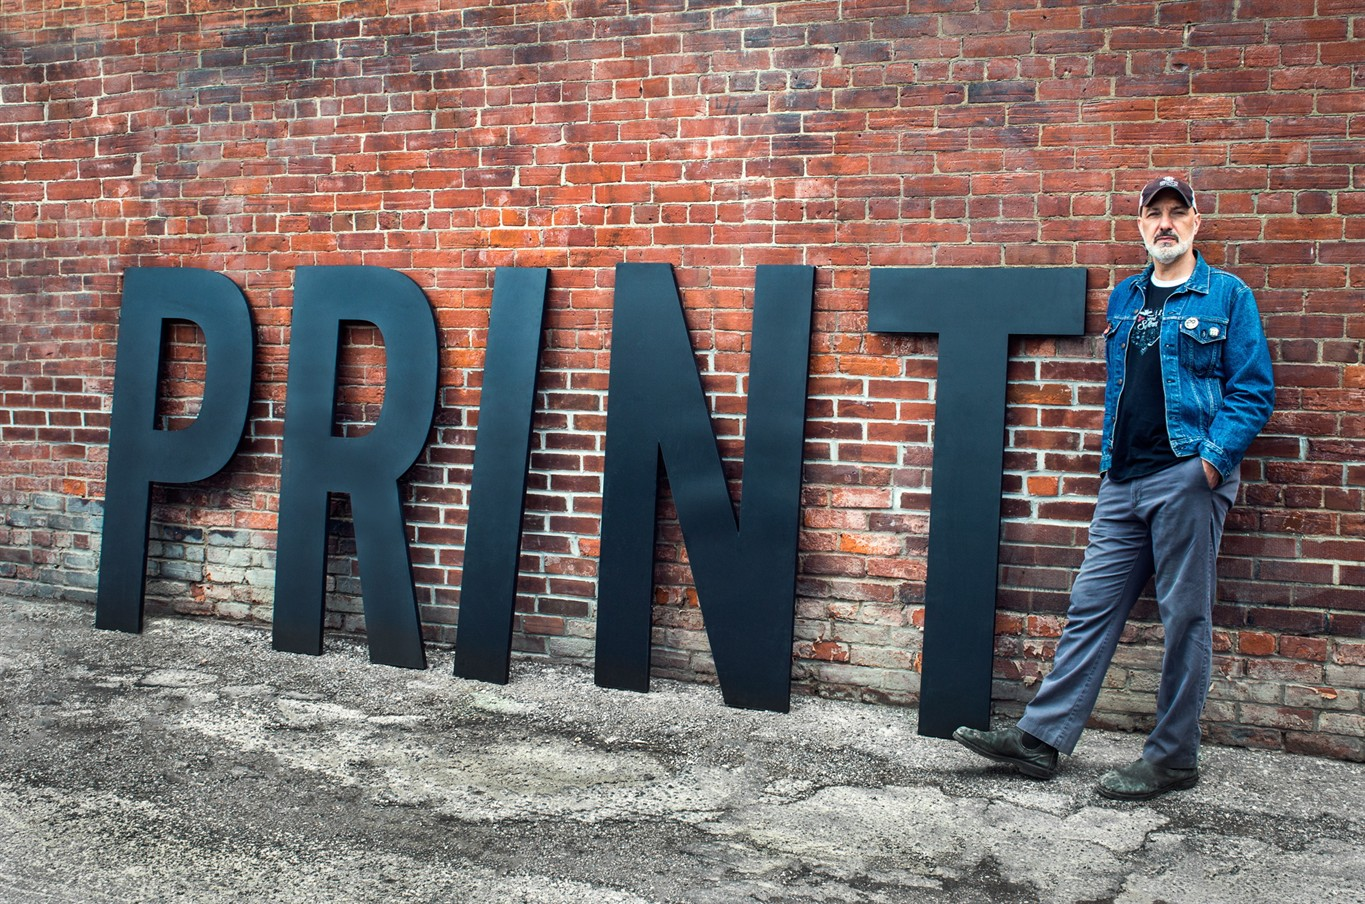 Writer and musician Dave Bidini to launch Toronto community newspaper